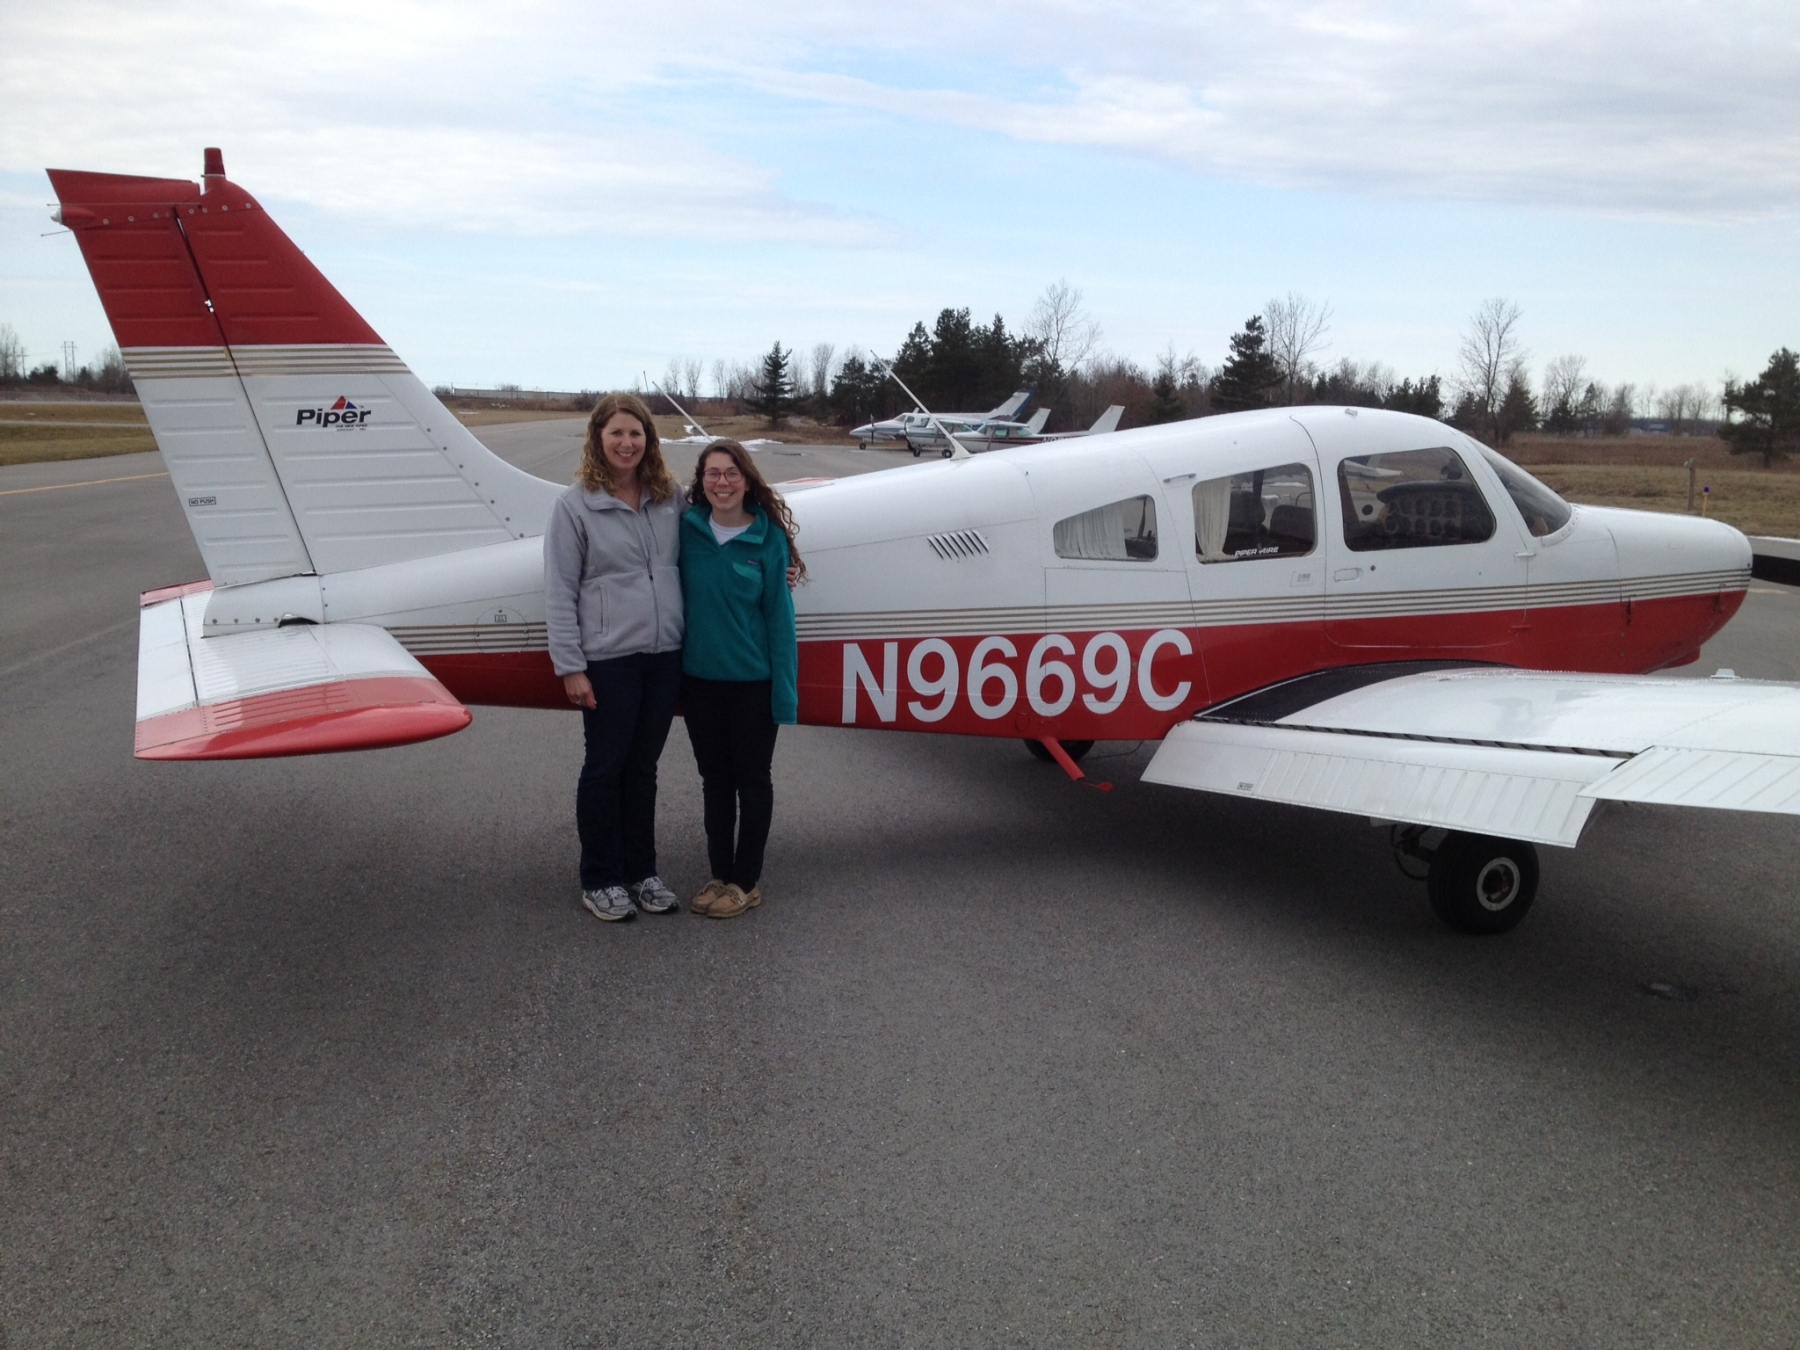 Lisa and her daughter Becky next to airplane Lisa took her flight test in